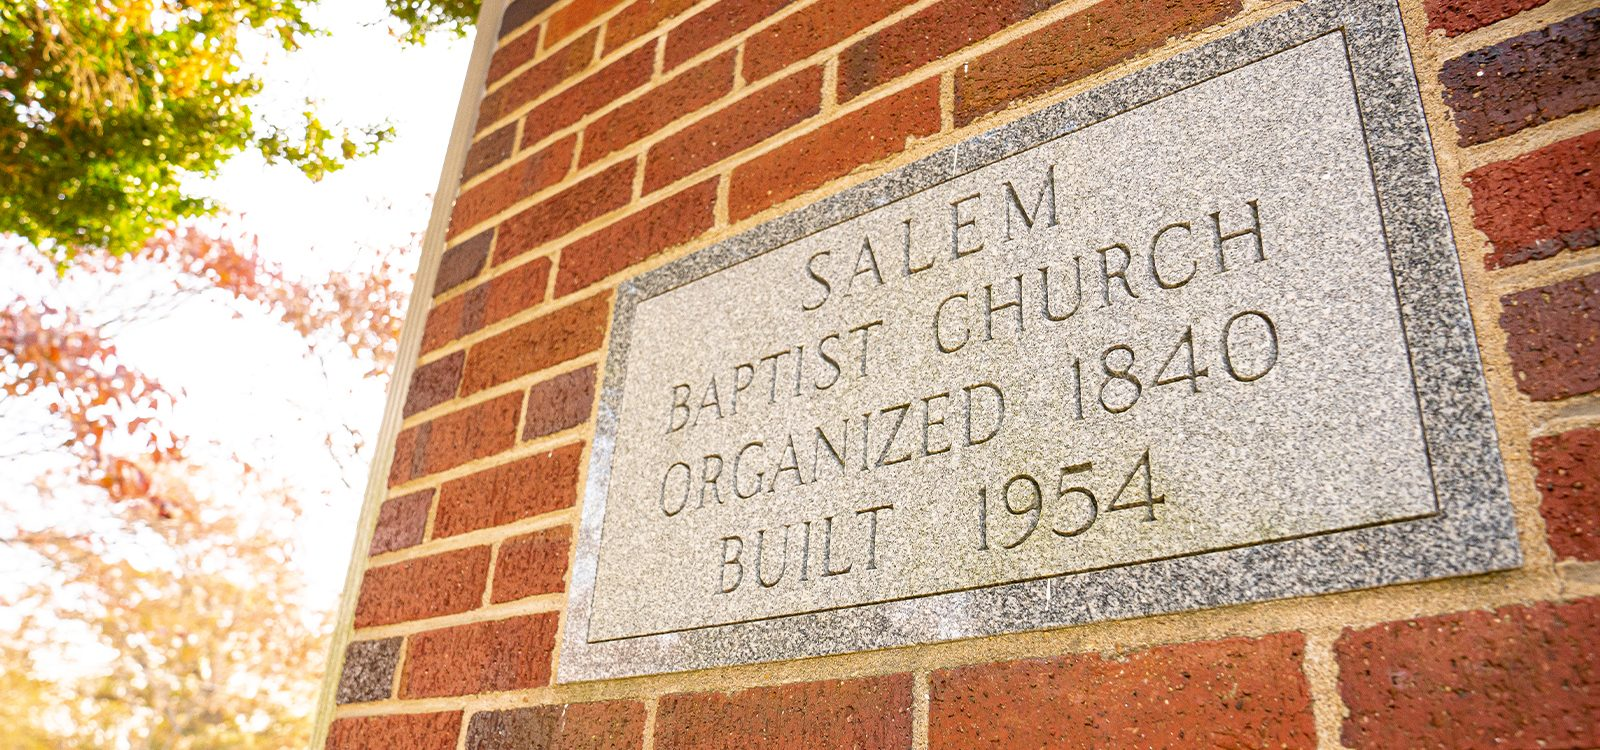 salem-baptist-church-a.jpg